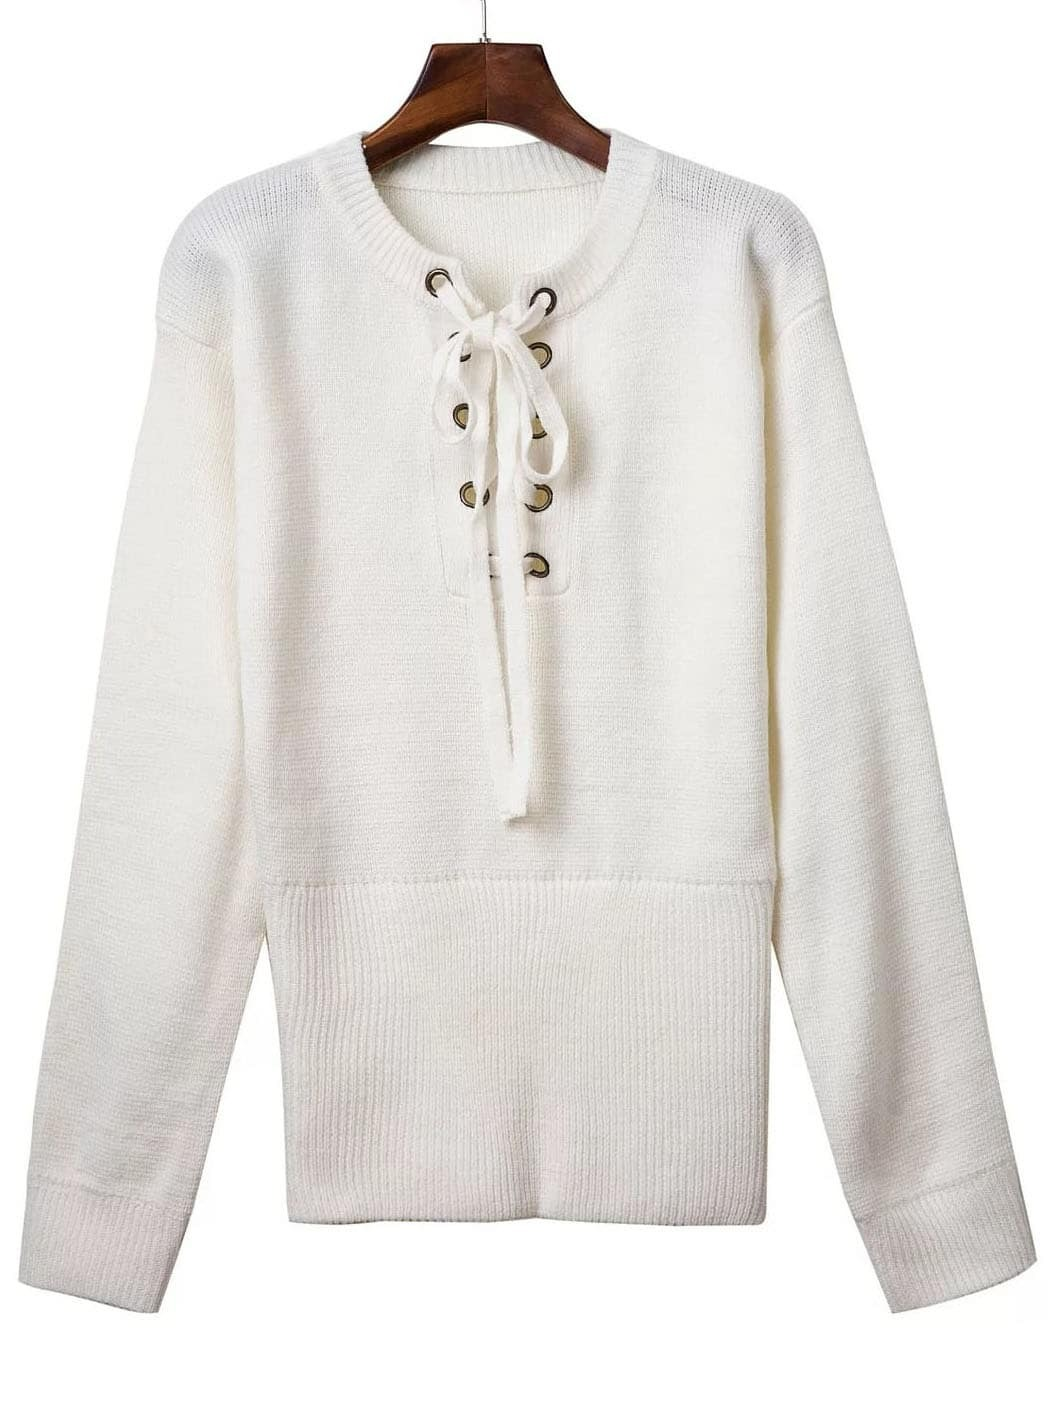 White Ribbed Cuff Wide Hem Lace Up Sweater